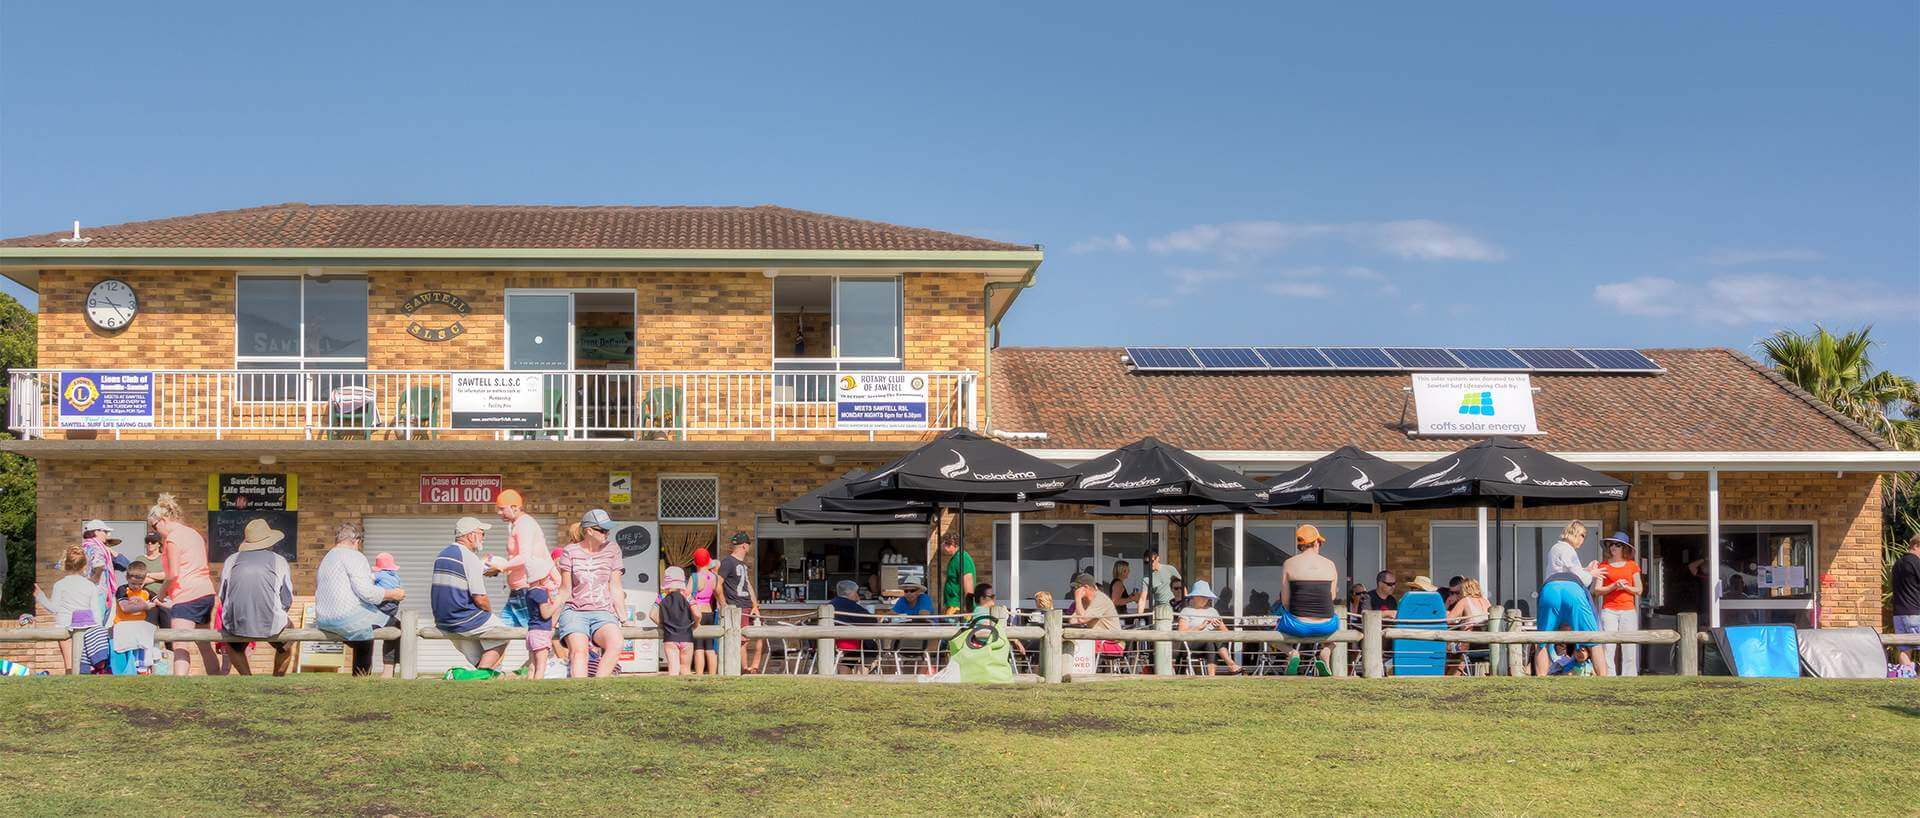 Sawtell Surf Life Saving Club - Feature Image 3